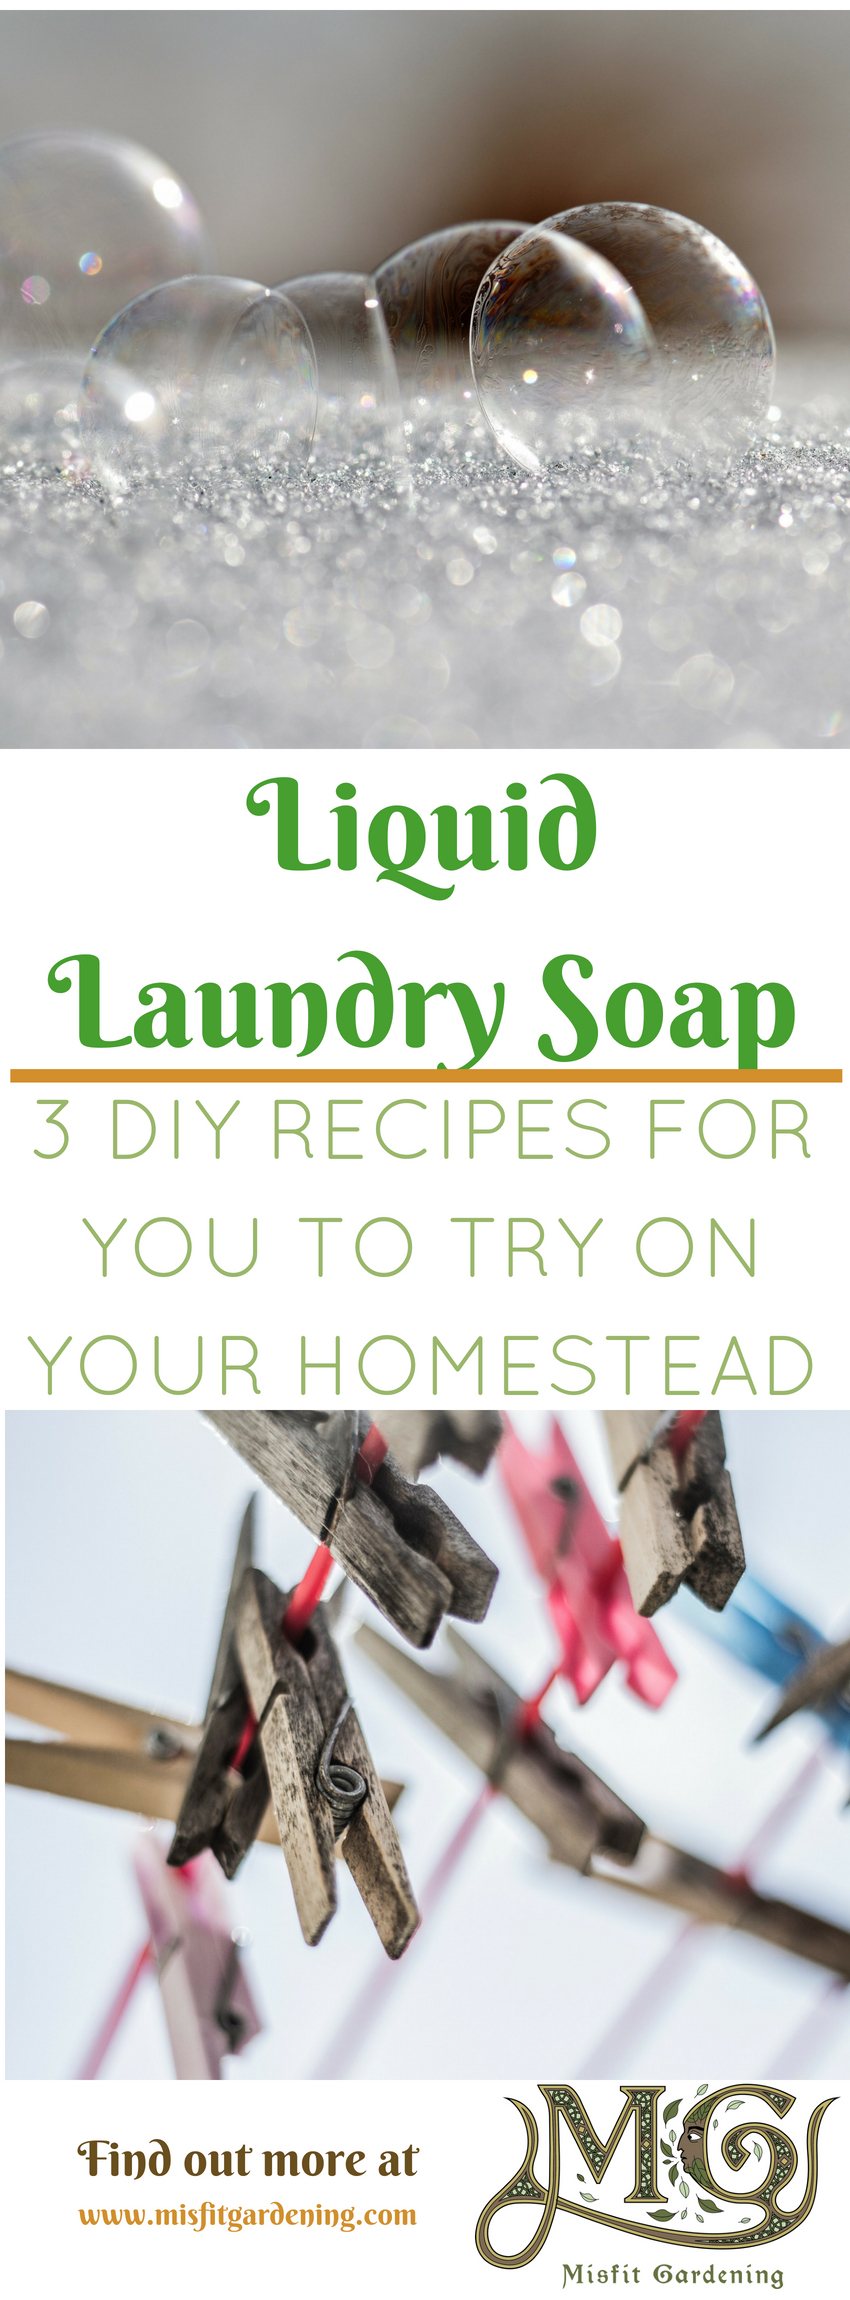 Homemade laundry soap liquid misfit gardening save some dollars on your homestead with these 3 diy liquid laundry soap recipes or pin solutioingenieria Images